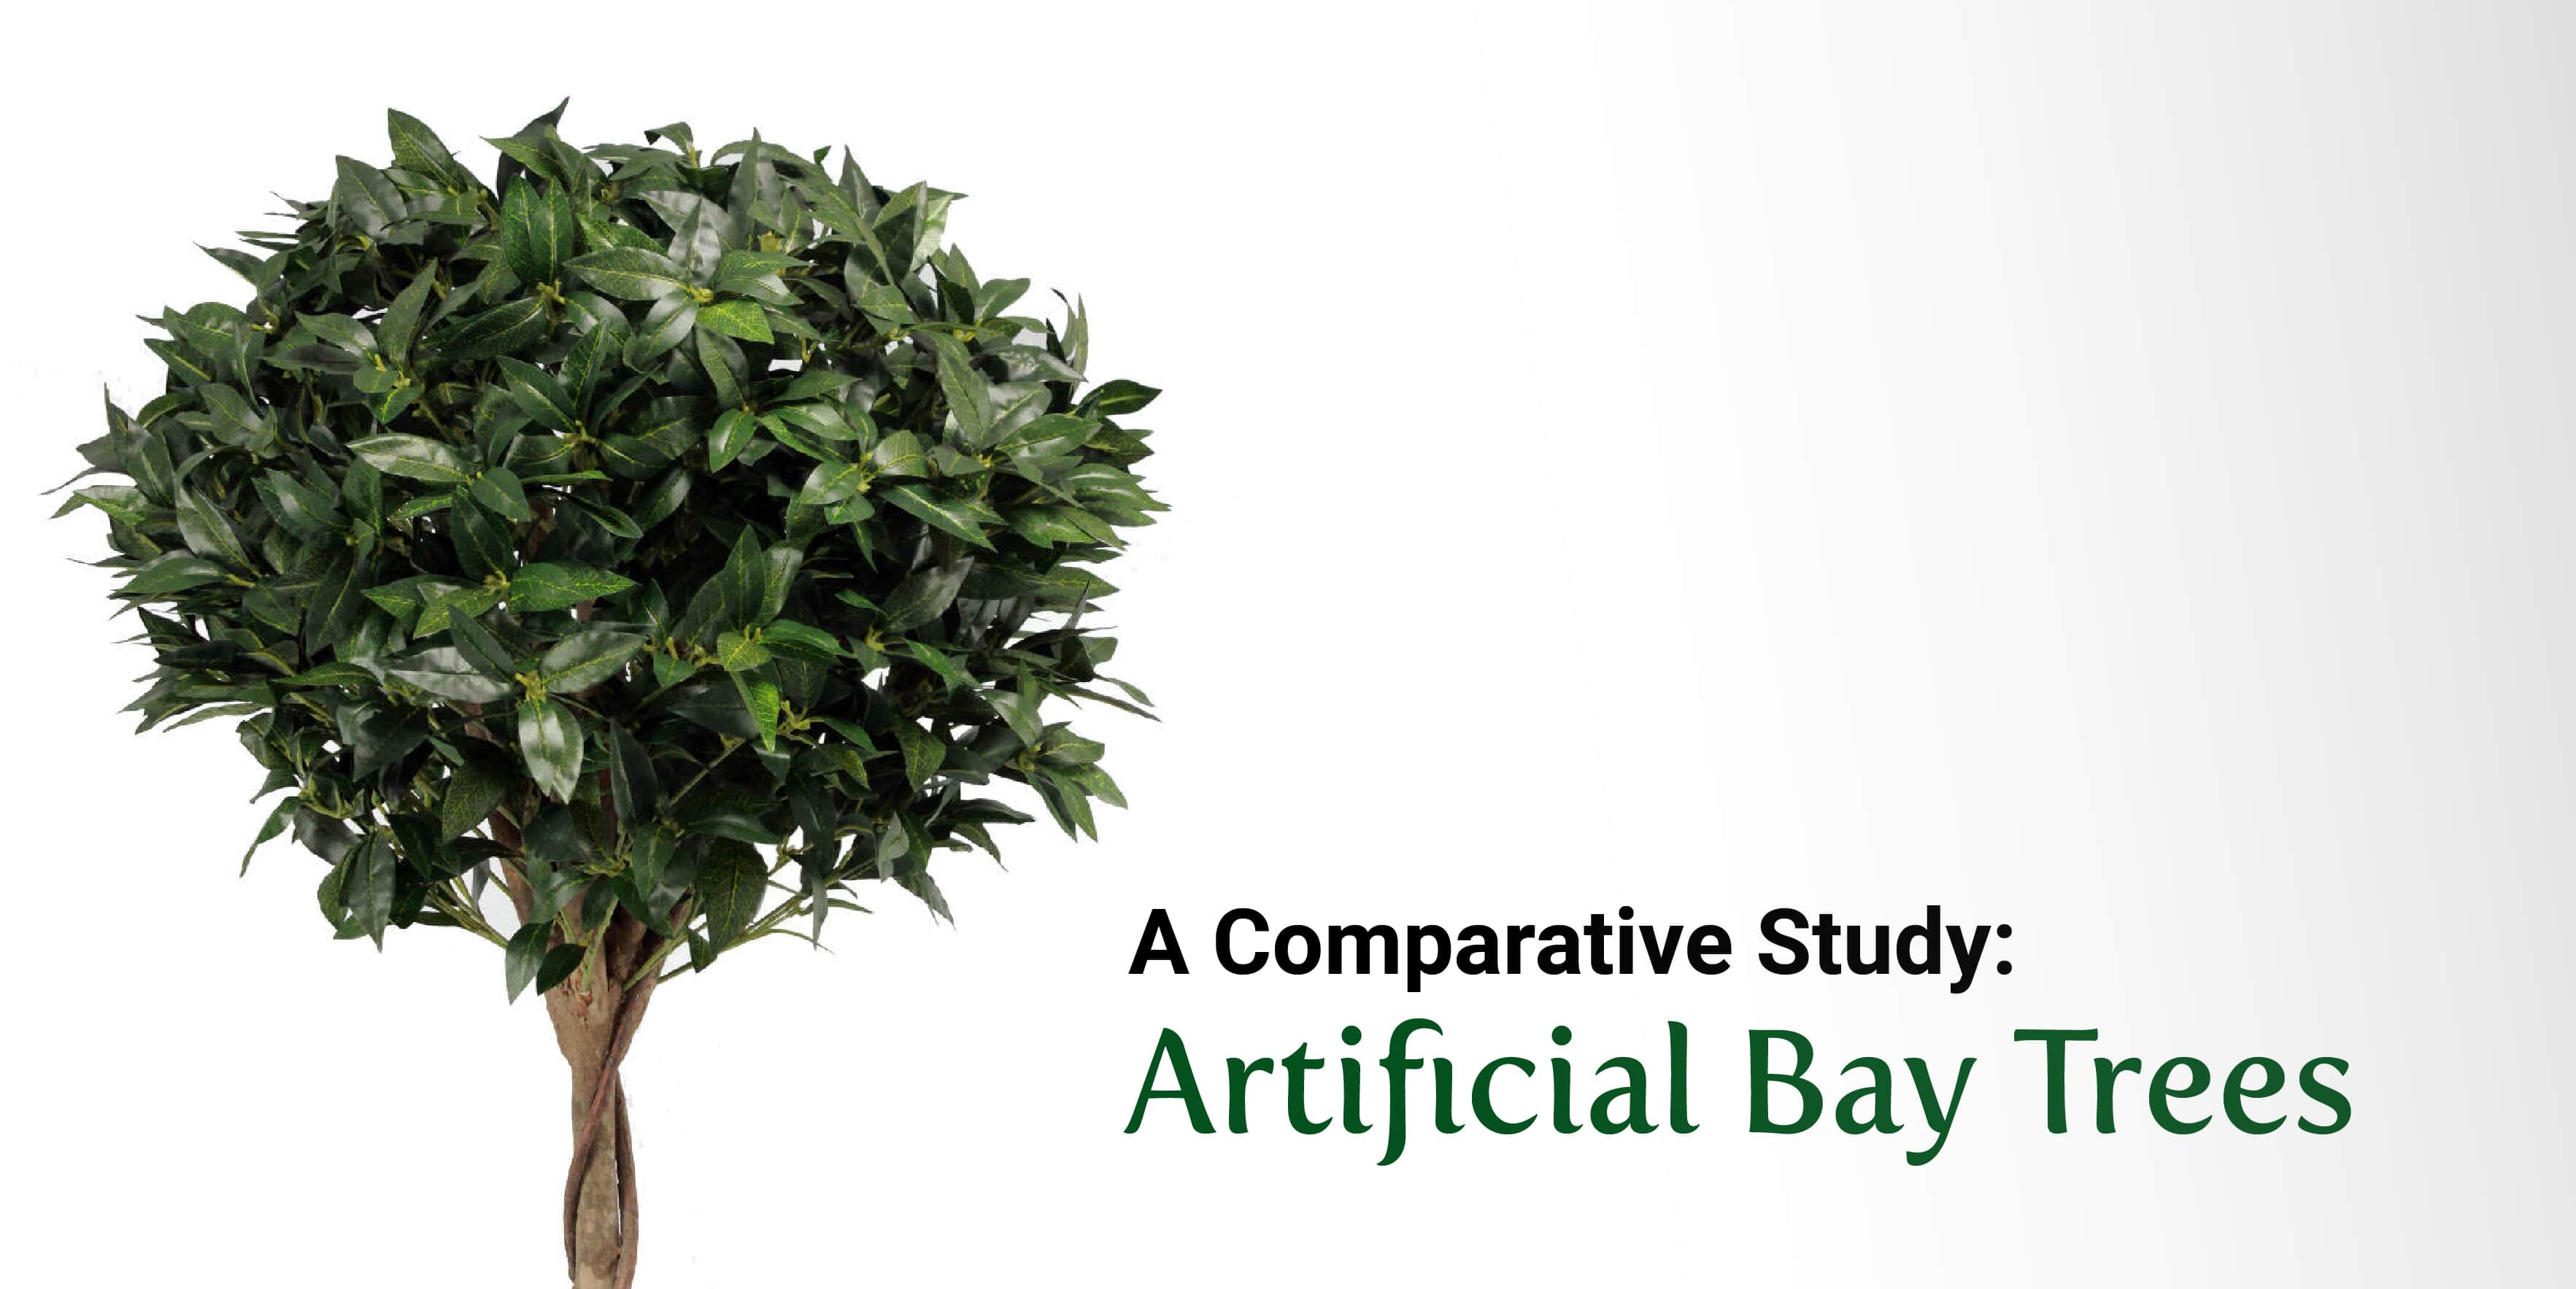 A Comparative Study: Blooming Bays vs. the Alternatives